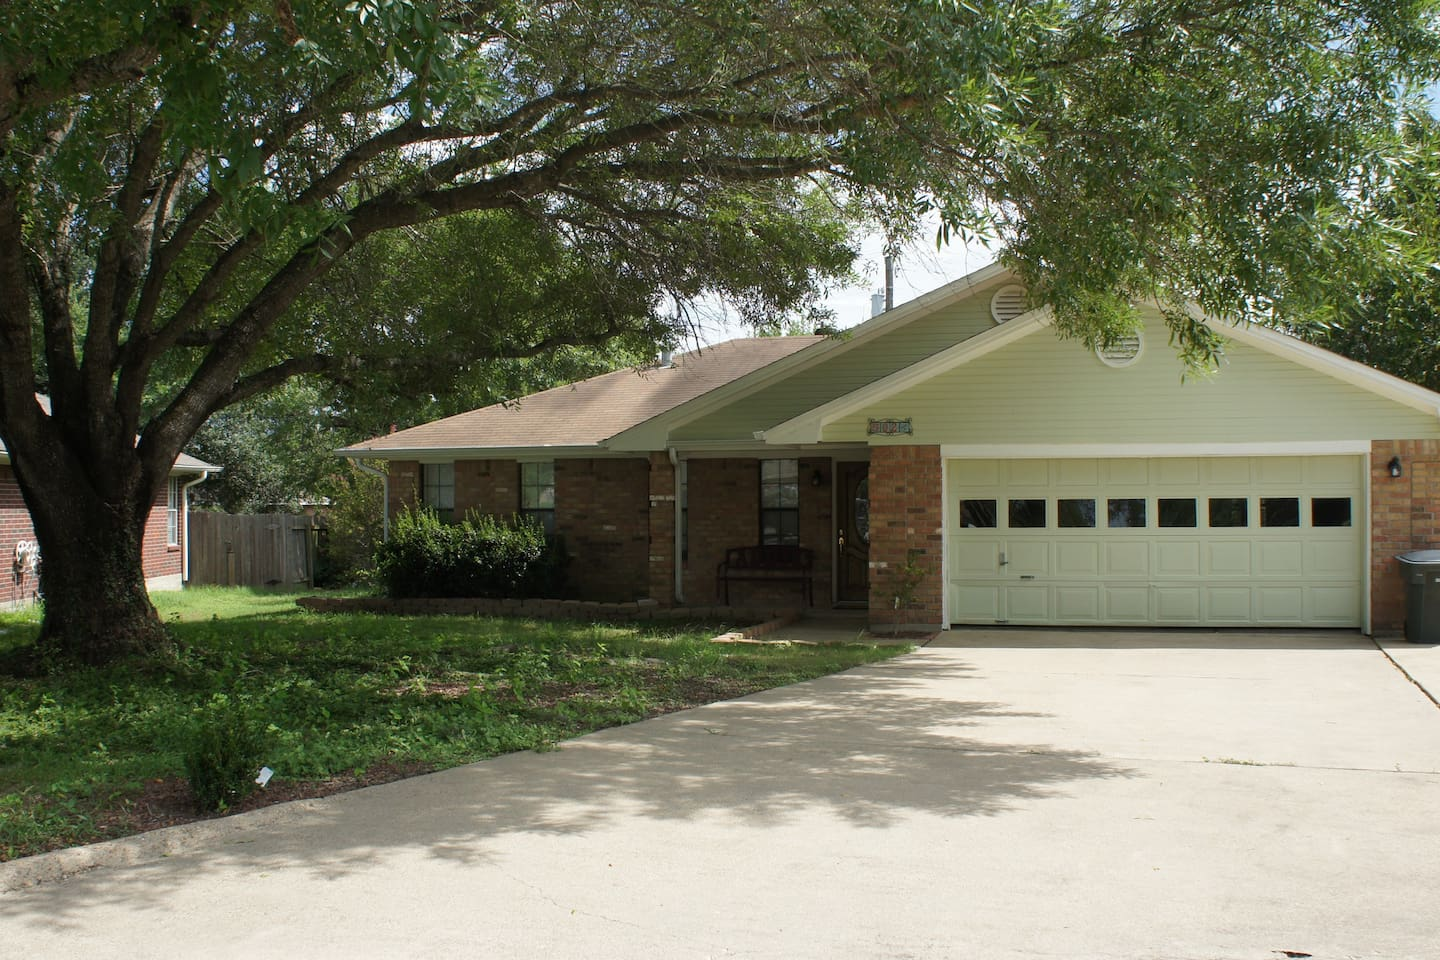 Front of house and driveway.